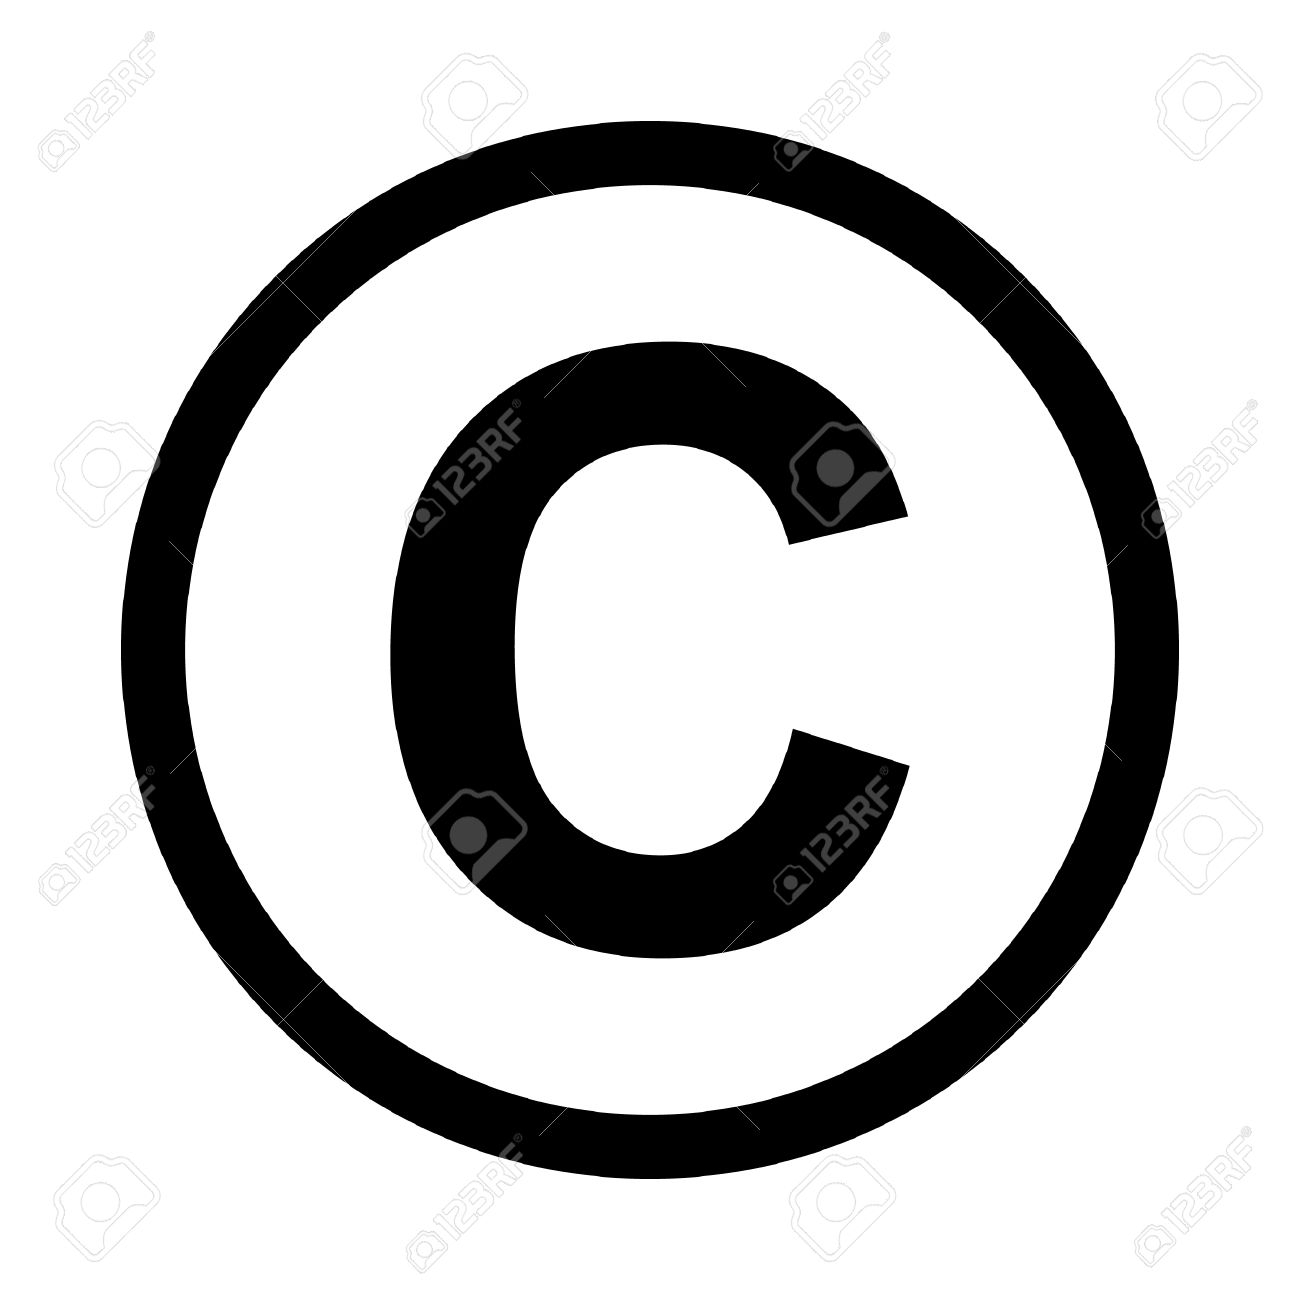 Copyright free icons clipart image black and white stock Copyright Icon #131025 - Free Icons Library image black and white stock